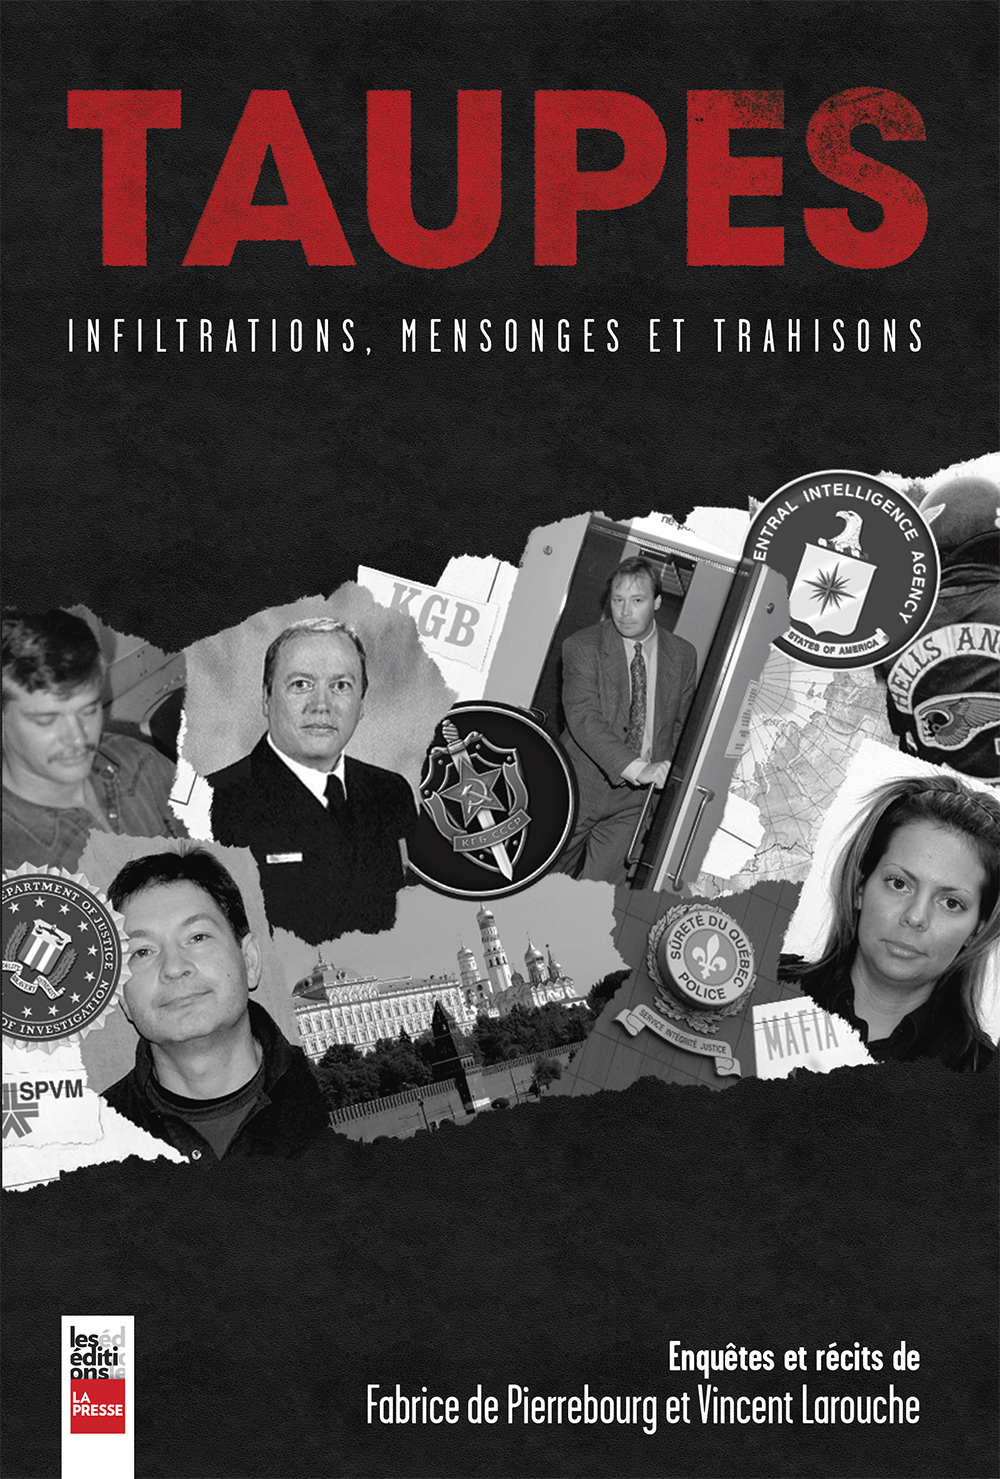 Taupes, Infiltrations, mensonges et trahisons